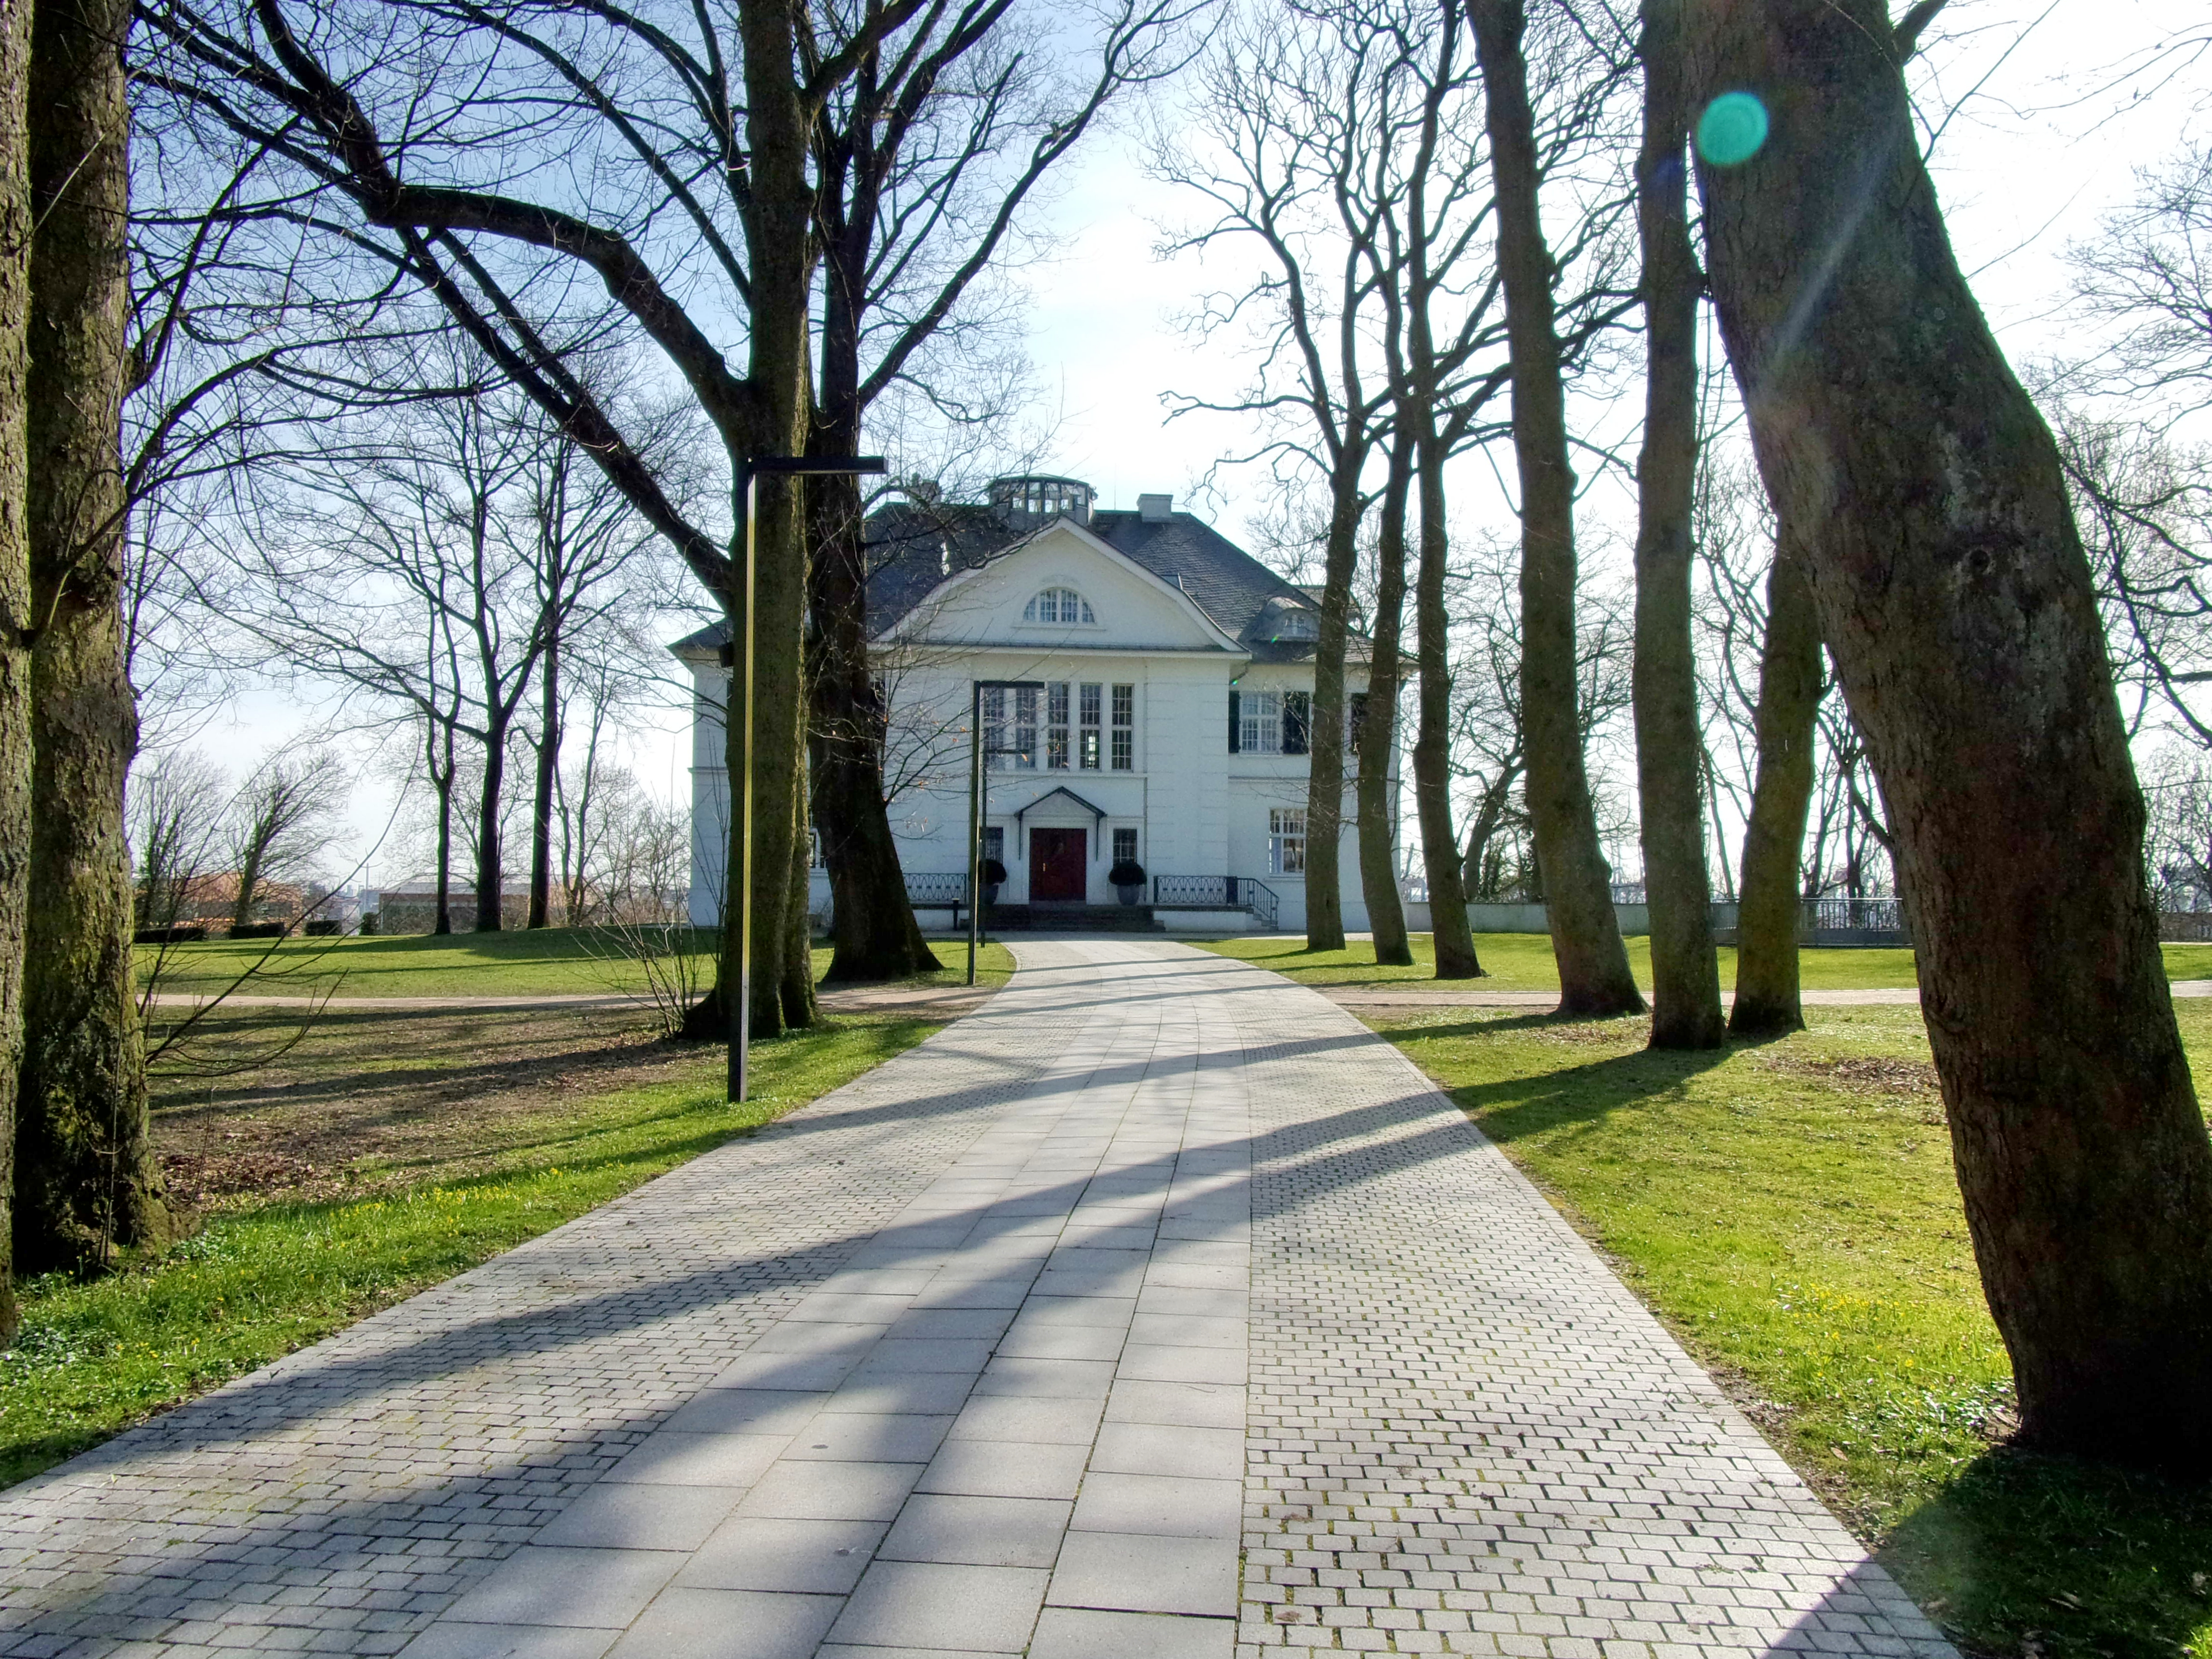 many fashionable official best authentic File:Plangesche Villa im Heine-Park (1).jpg - Wikimedia Commons